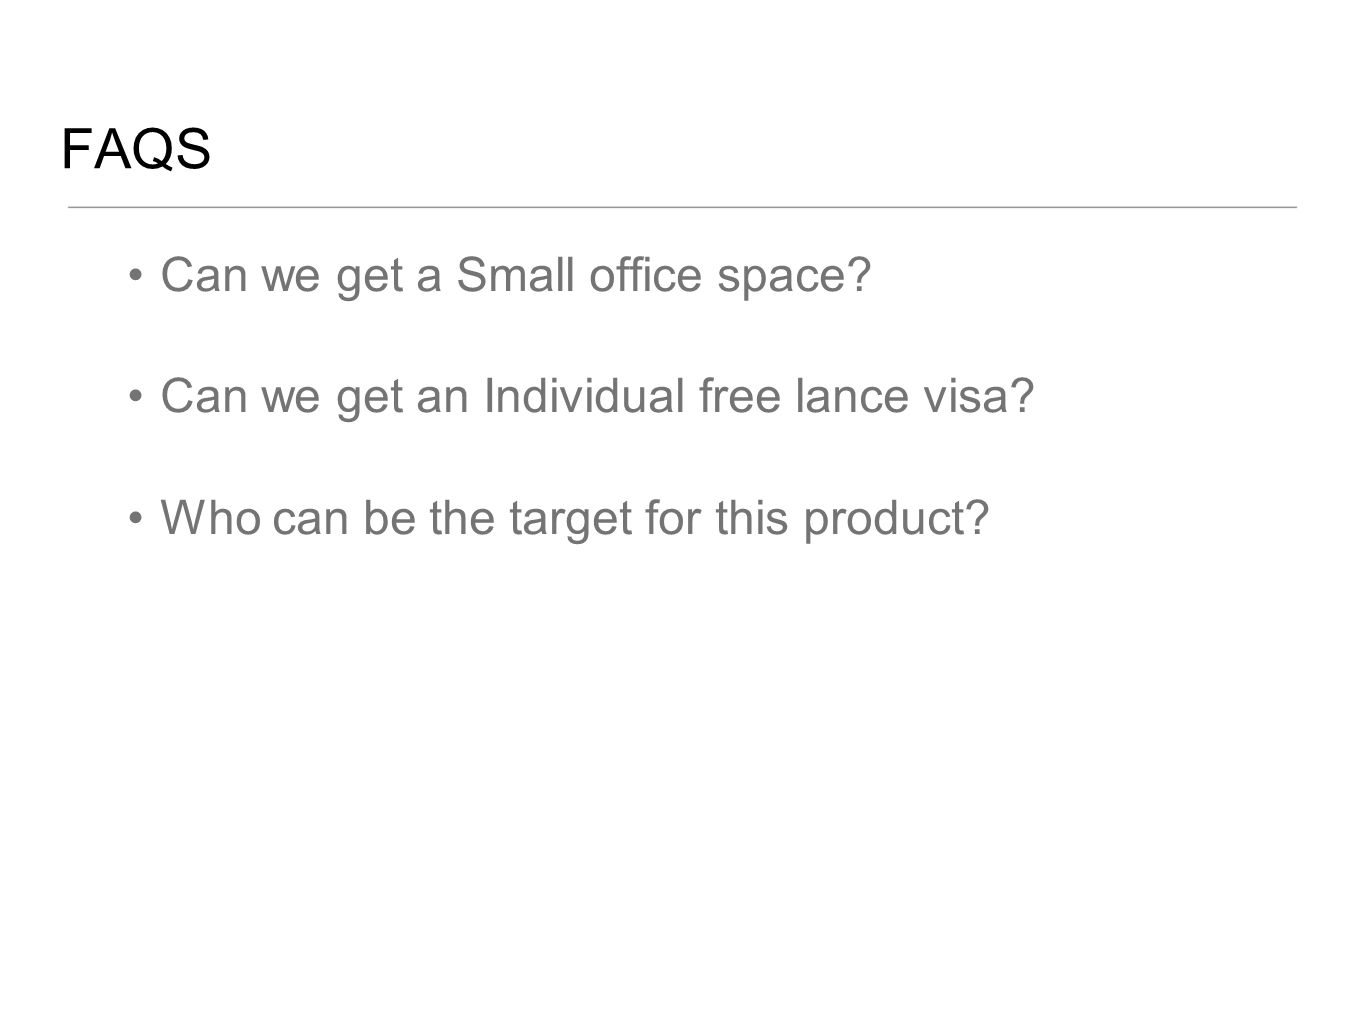 FAQS Can we get a Small office space. Can we get an Individual free lance visa.